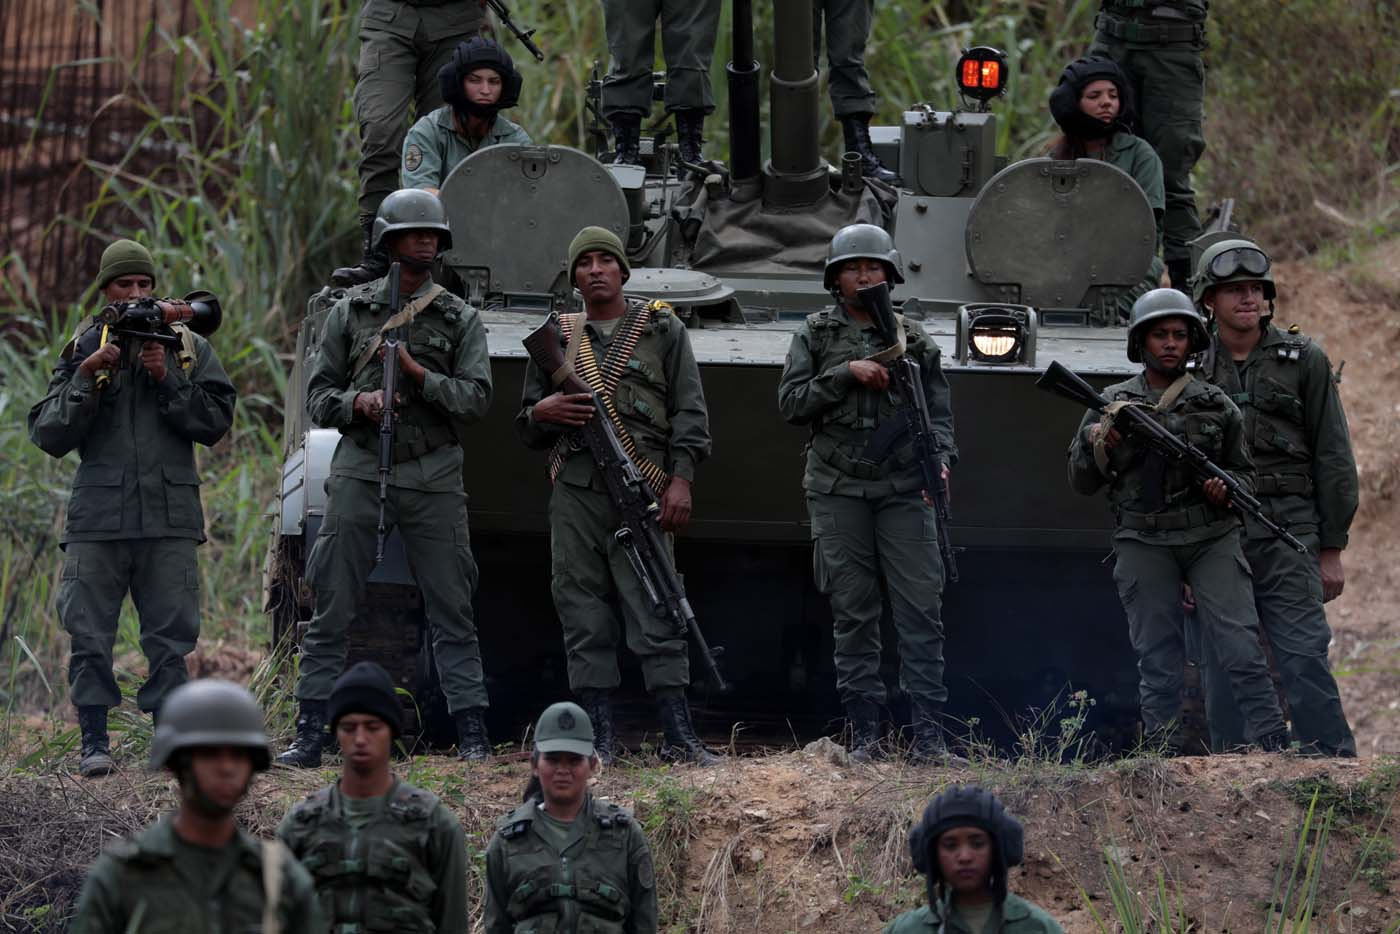 Members of the National Bolivarian Armed Forces attend a news conference by Admiral-in-Chief Remigio Ceballos, Strategic Operational Commander of the Bolivarian National Armed Forces, during military exercises at Fuerte Tiuna Military Base in Caracas, Venezuela August 25, 2017. REUTERS/Marco Bello